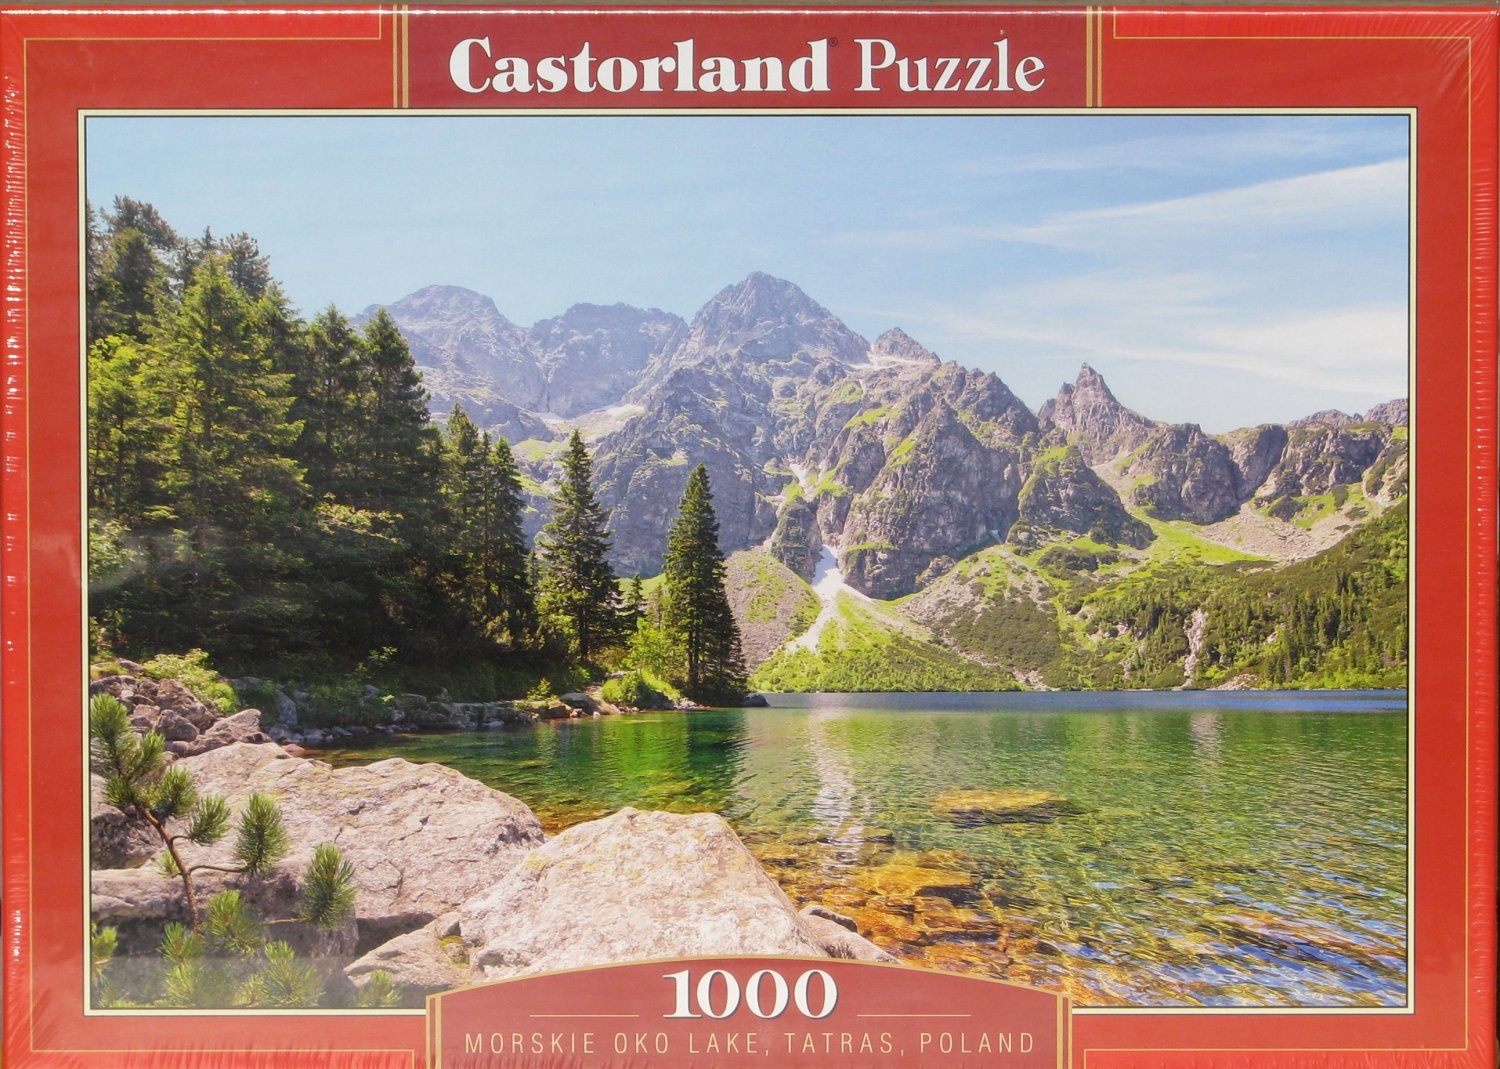 Castorland MORSKIE OKO LAKE POLAND 1000 pc Jigsaw Puzzle Wolf